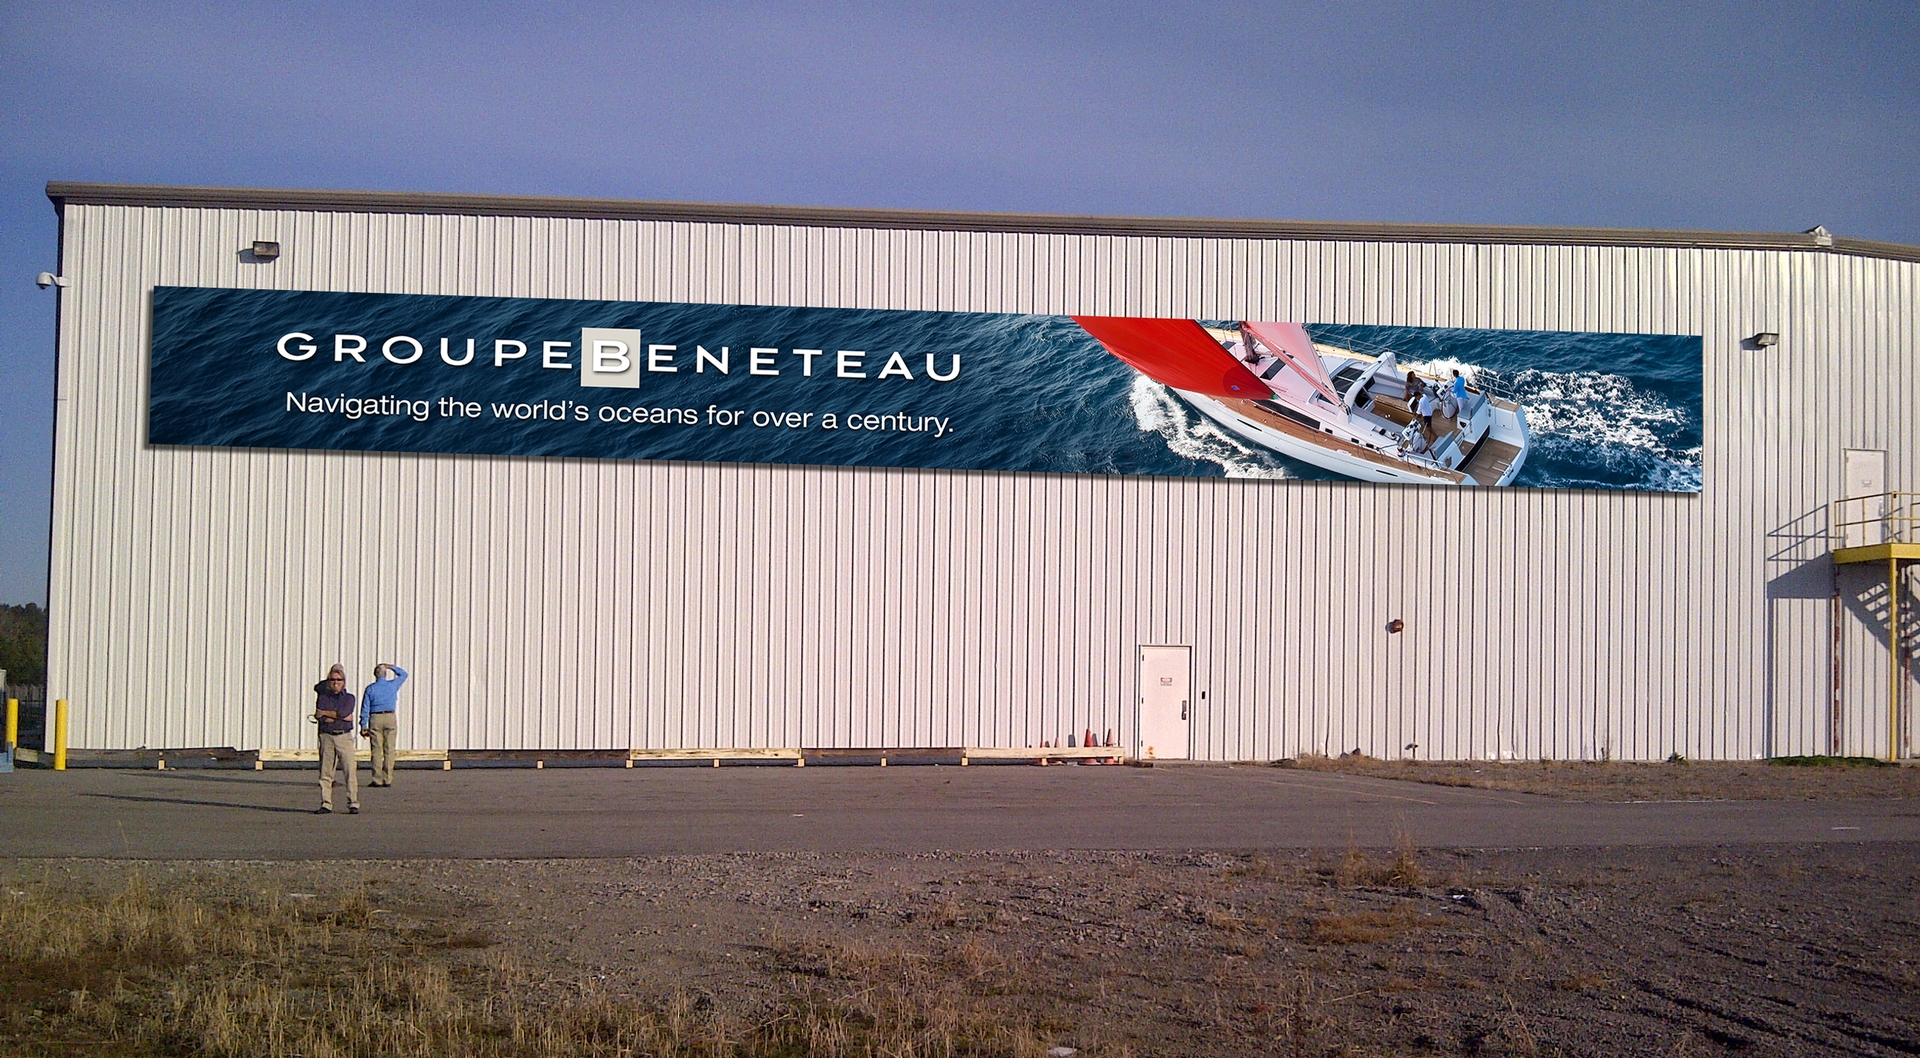 Banners for Beneteau's Facility in Marion, SC